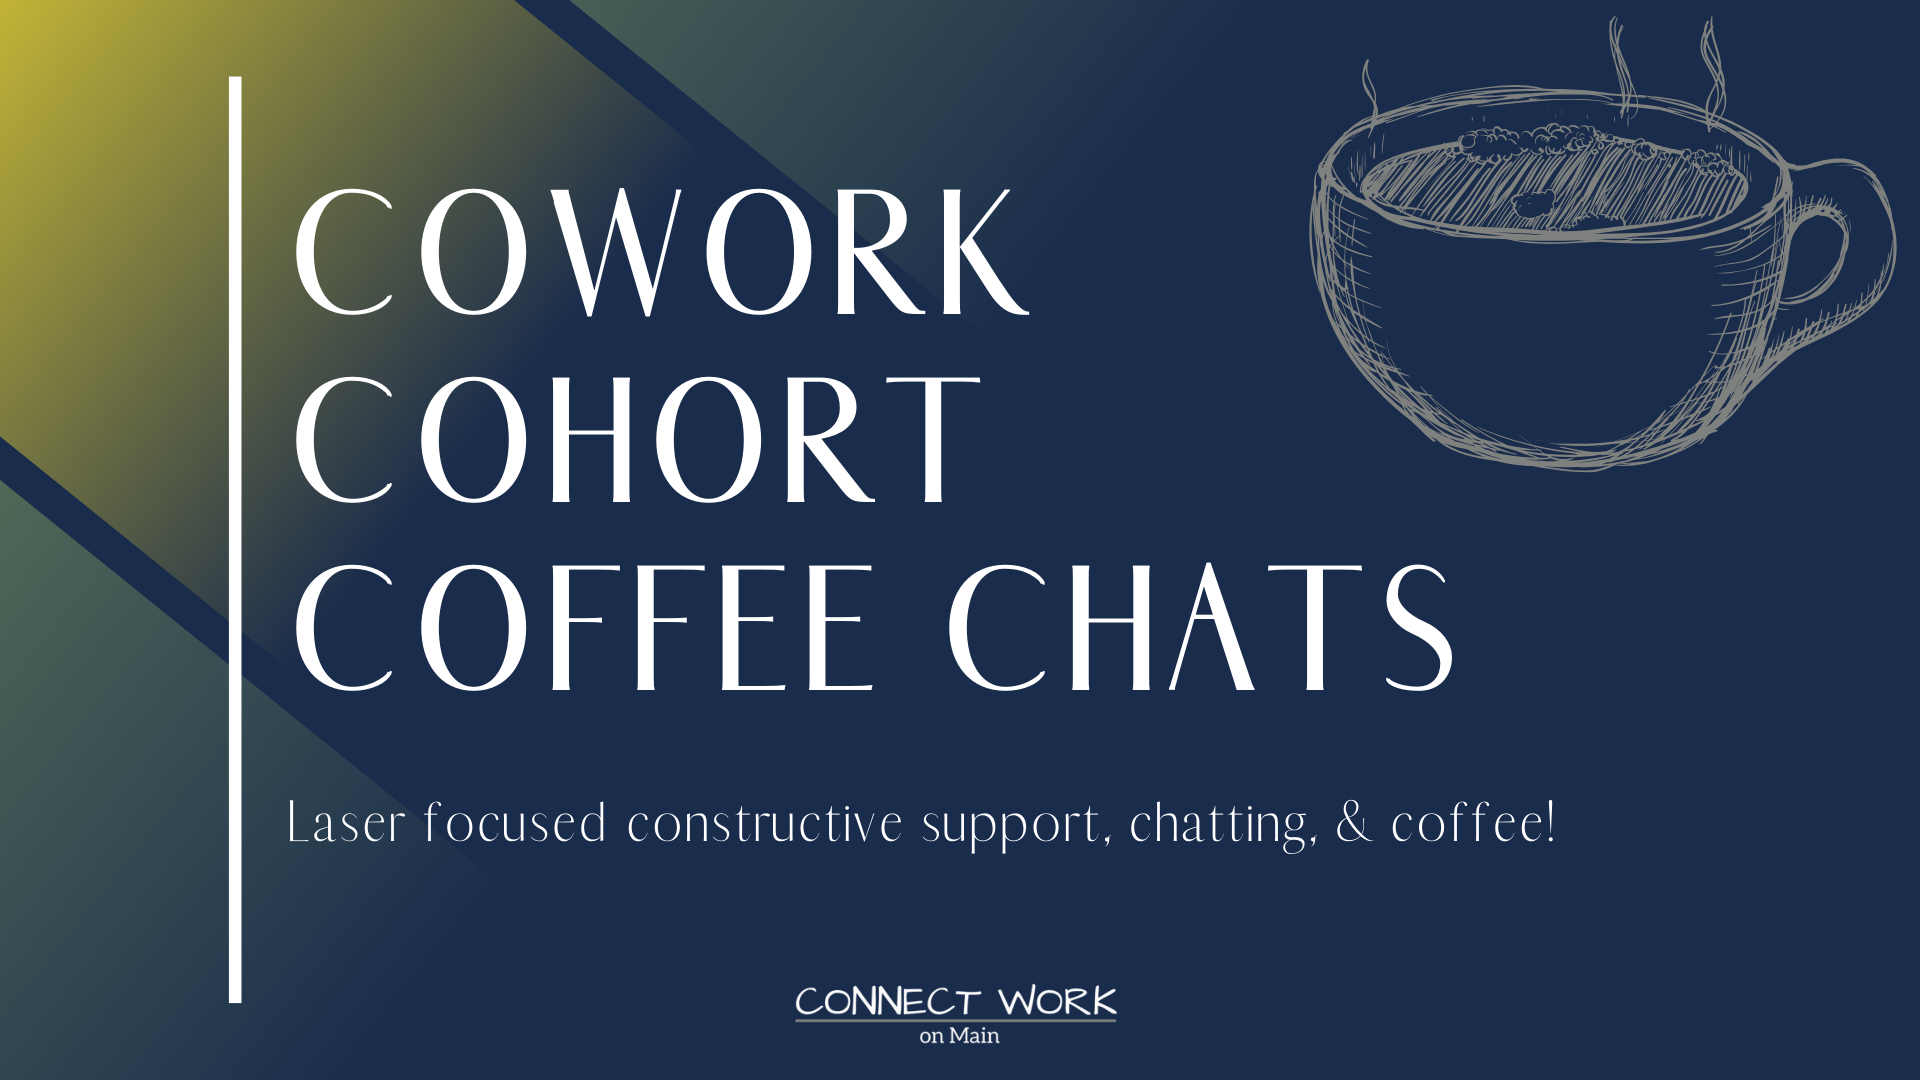 Cowork Cohort Coffee Chat